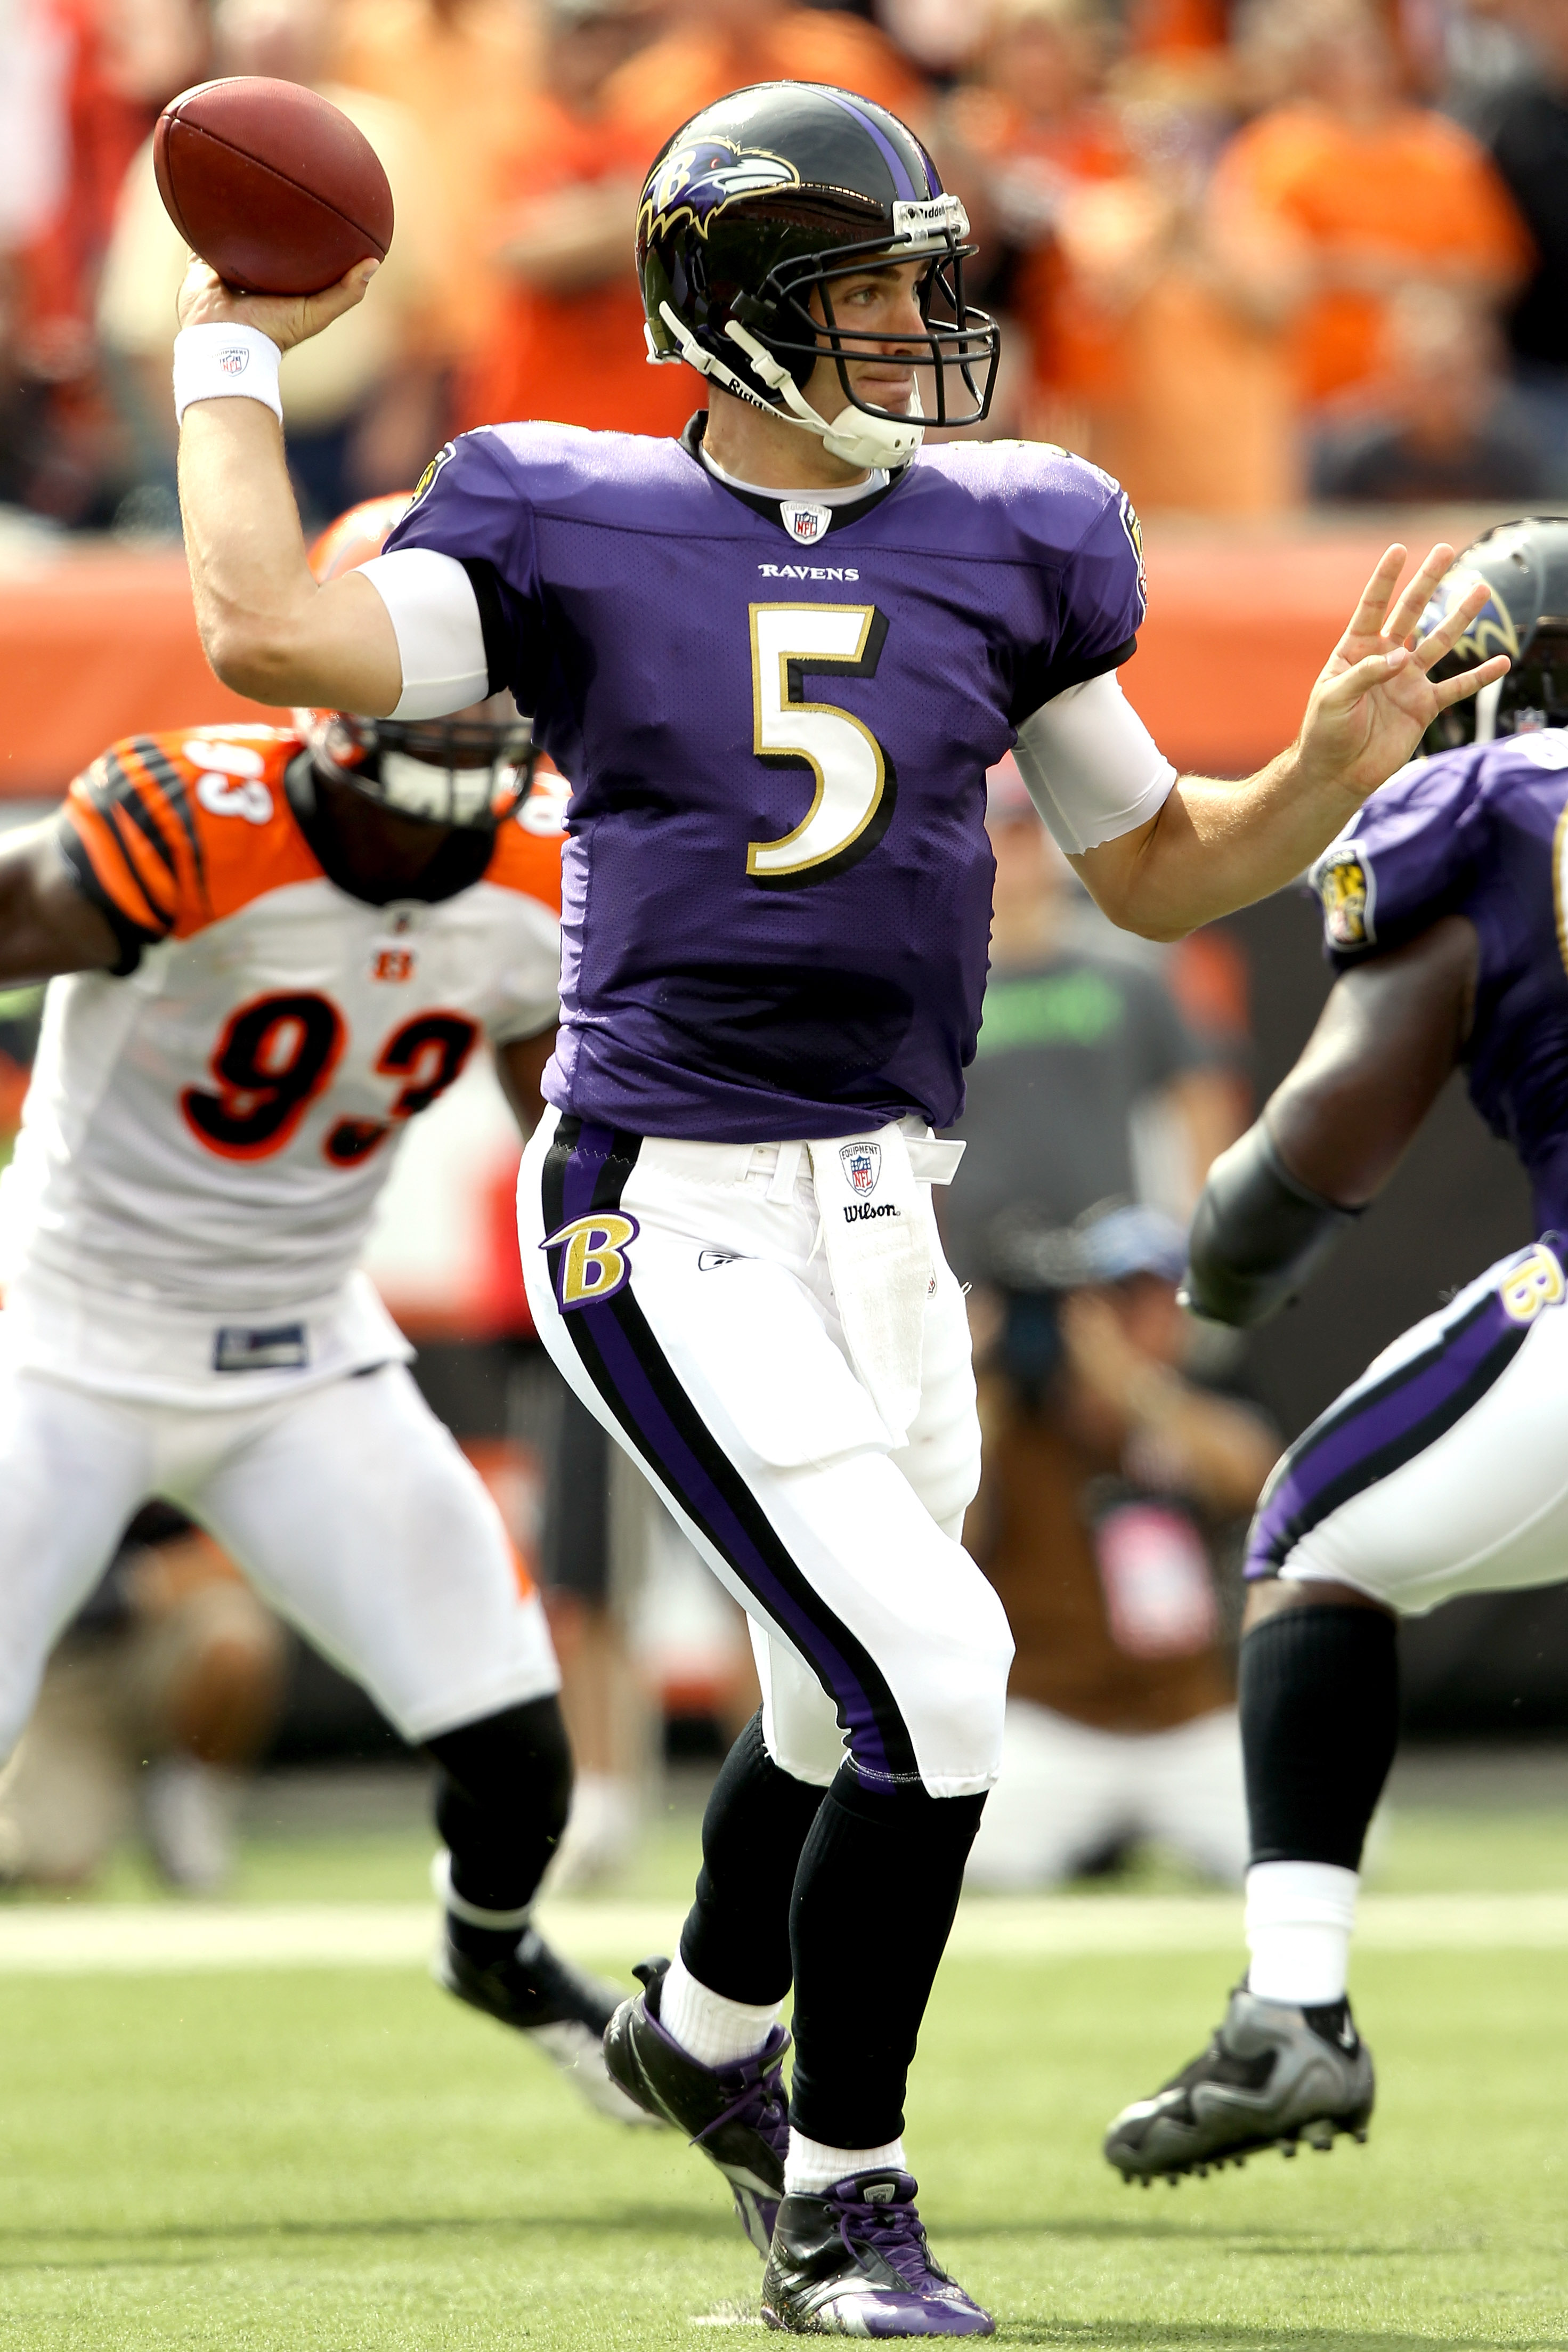 Flacco is coming off his worst performance as a pro